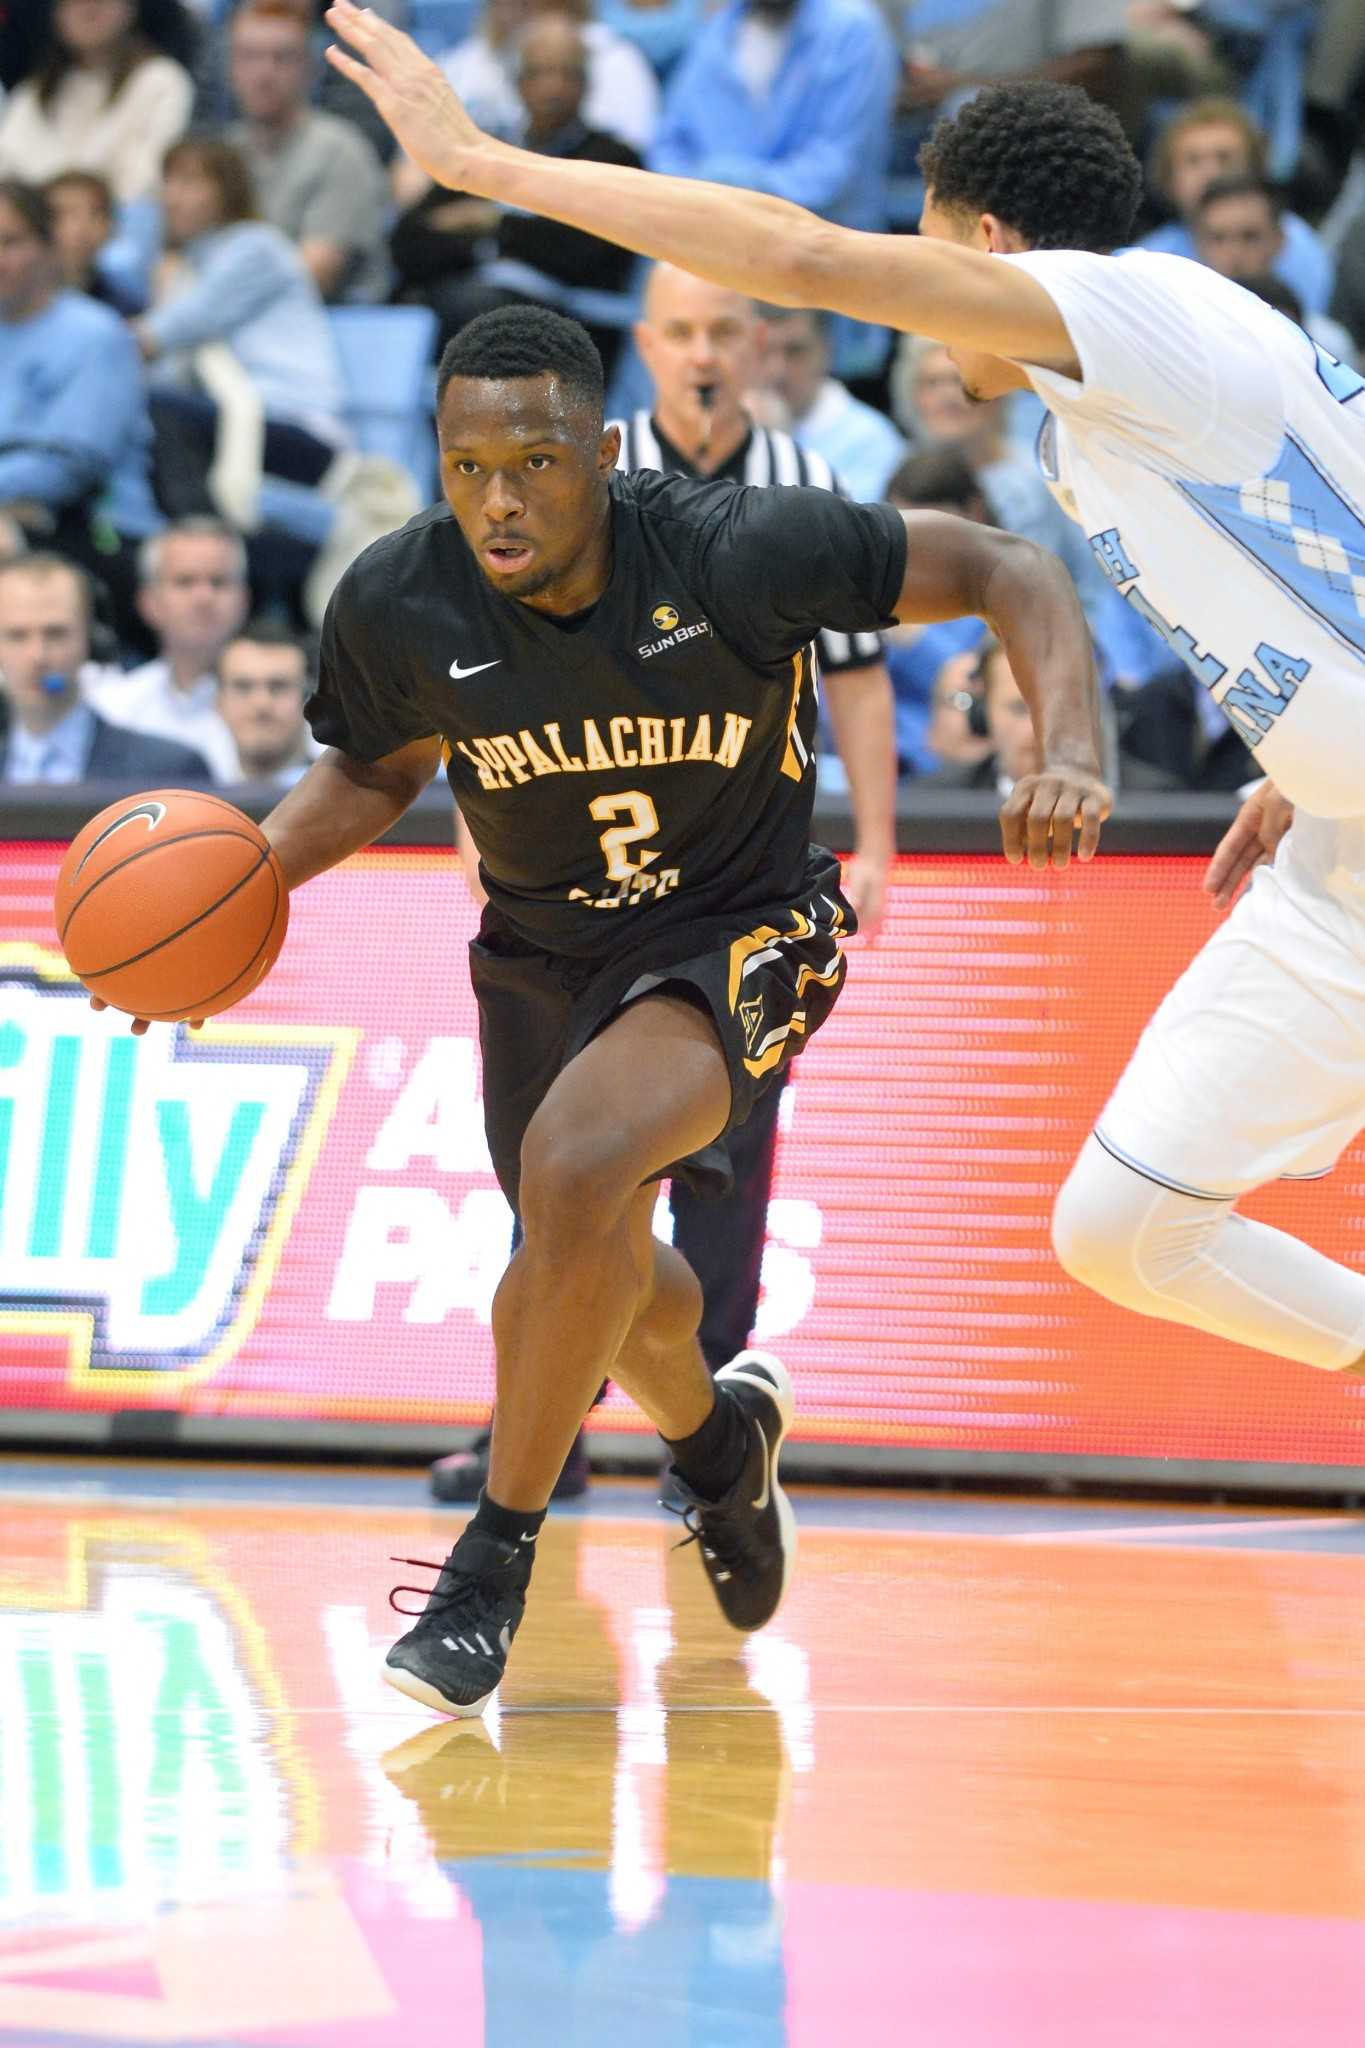 Appalachian State at 7/7 North Carolina in men's non-conference basketball action at Dean E. Smith Center on Monday, December 21, 2015 in Chapel Hill, North Carolina.  Carolina defeats the Mountaineers 94-70.